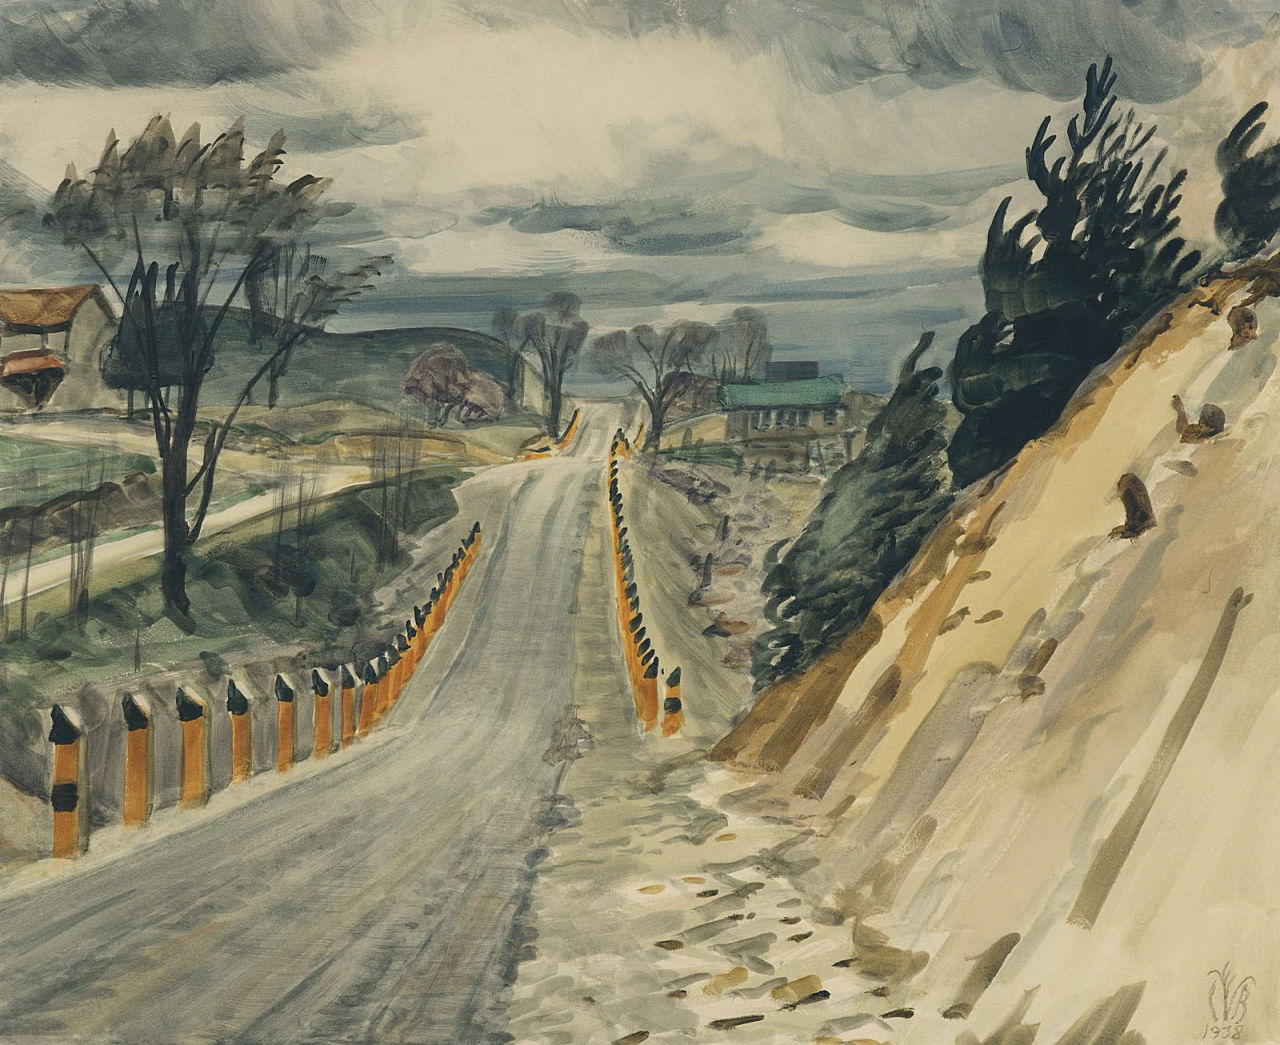 dappledwithshadow: Charles BurchfieldRoad in Early Spring1938